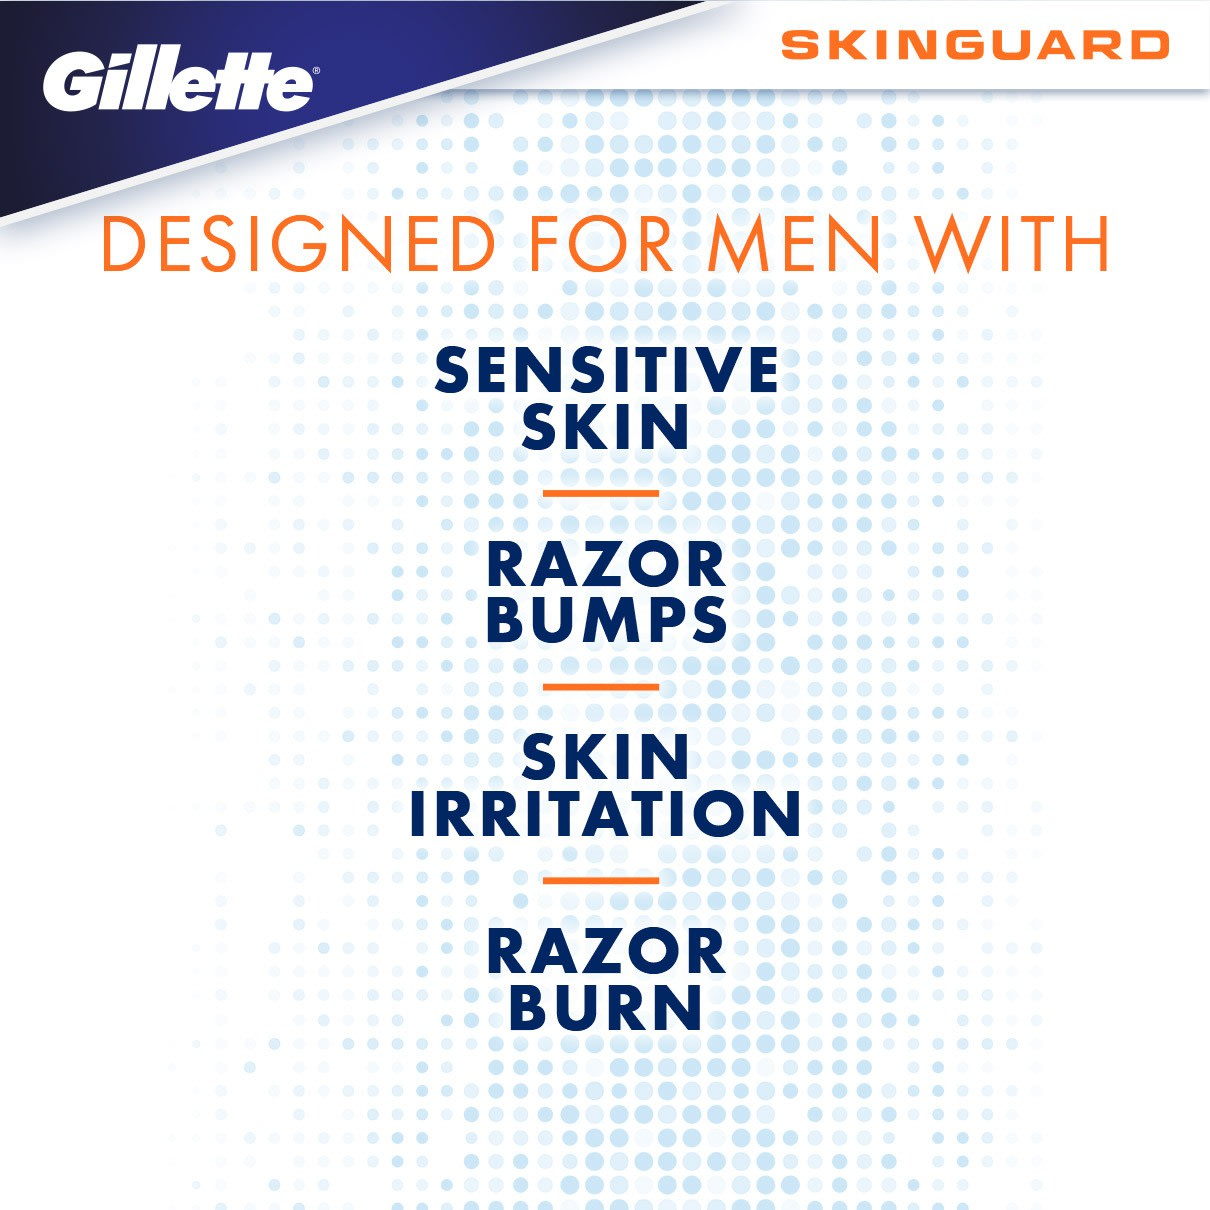 DESIGNED FOR MEN WITH SENSITIVE SKIN, RAZOR BUMPS, SKIN IRRITATION, RAZOR BURN